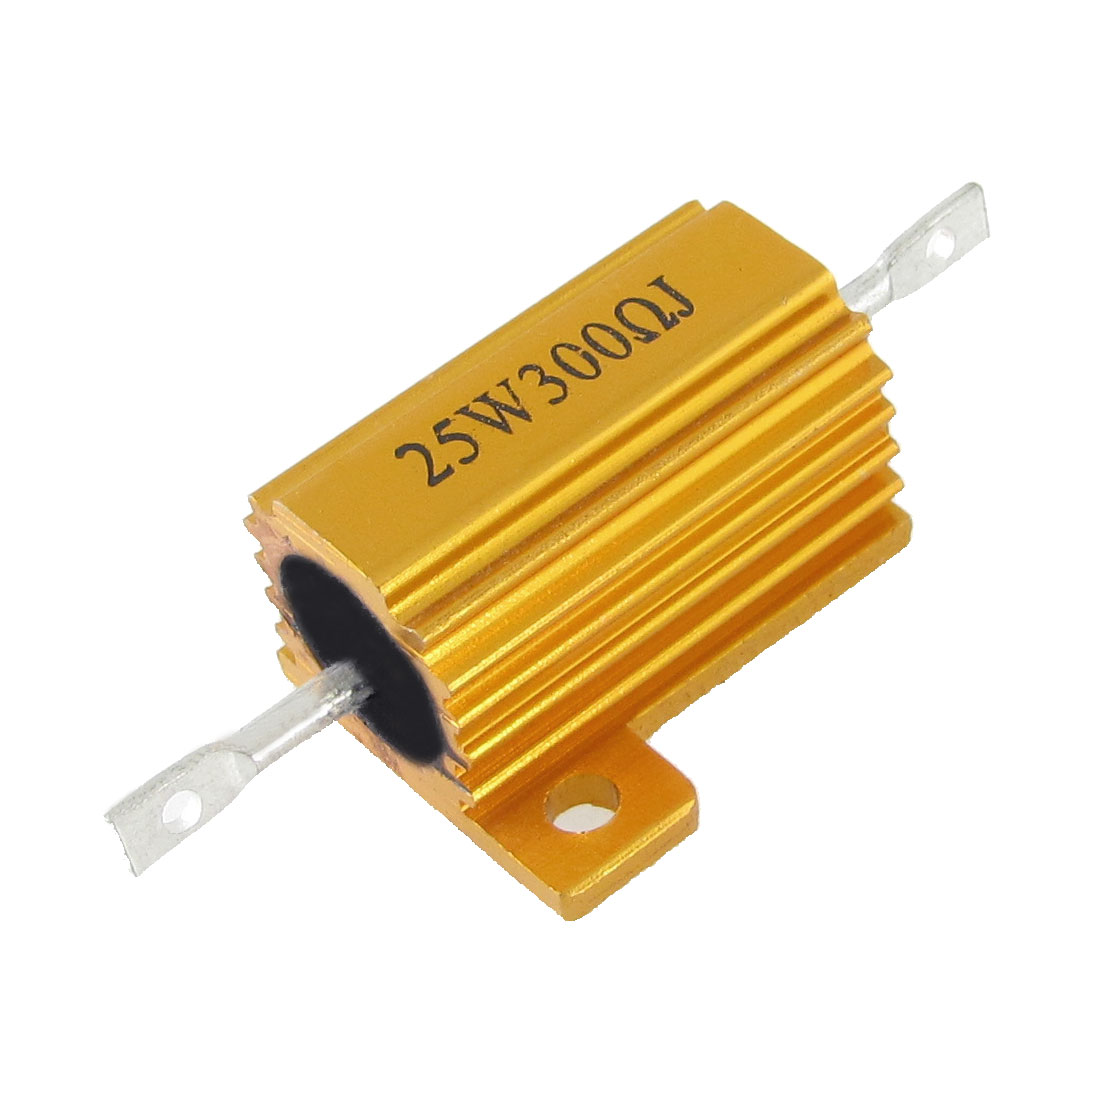 Chassis Mount Wirewound Aluminium Housed Power Resistor 5% 25W 300 Ohm